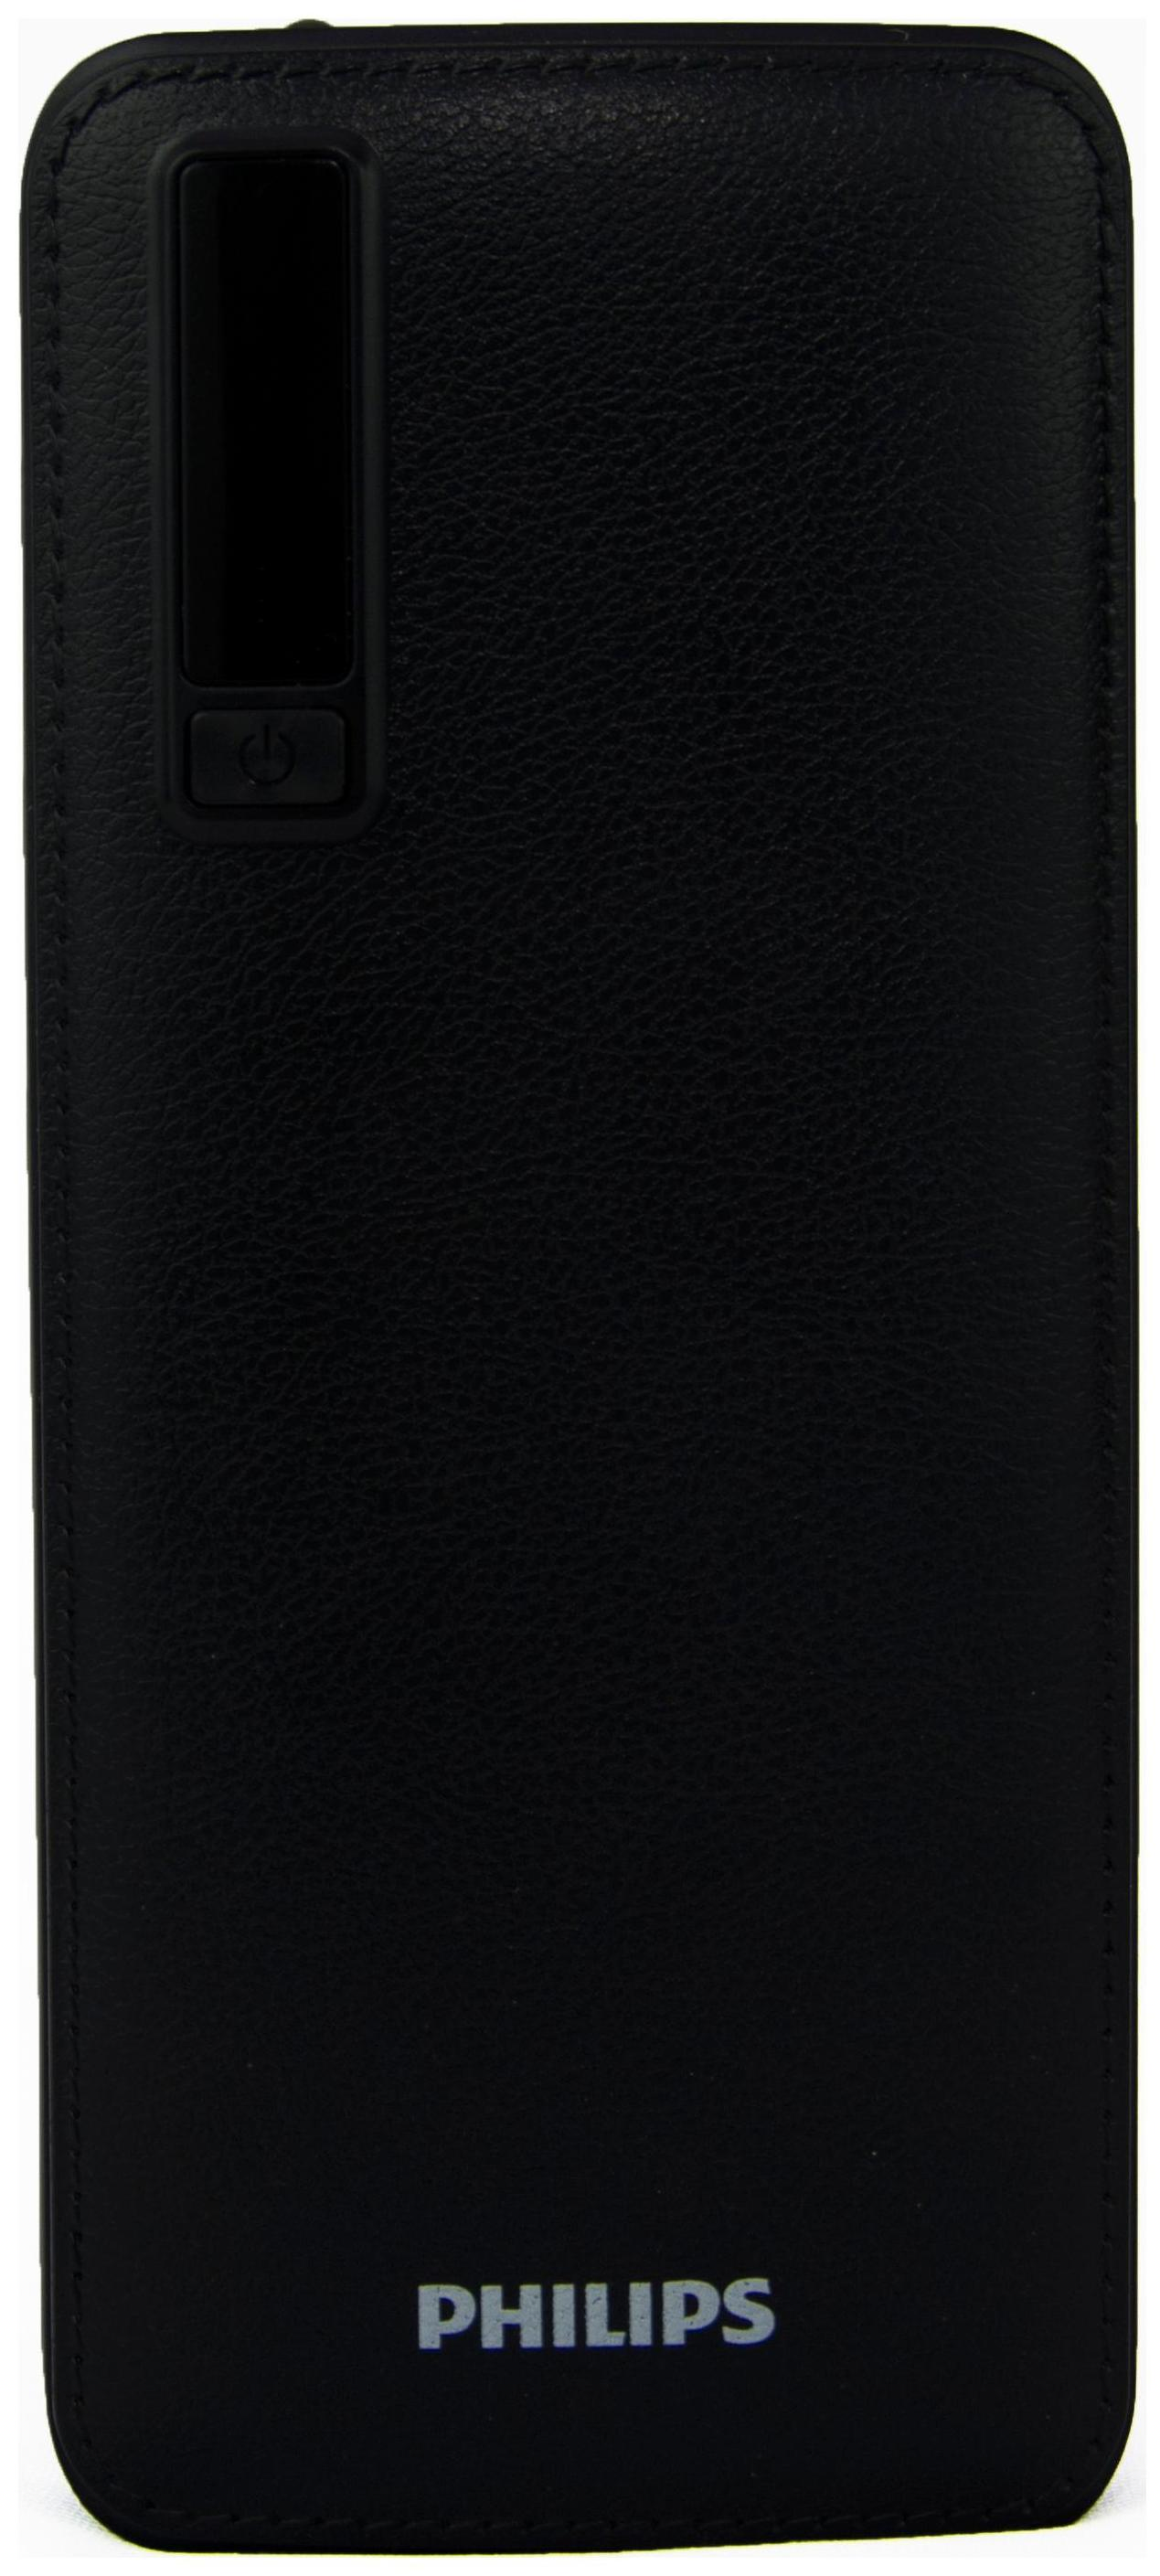 Philips DLP5206 5200mAh Power Bank With Li-Ion Battery (Black)